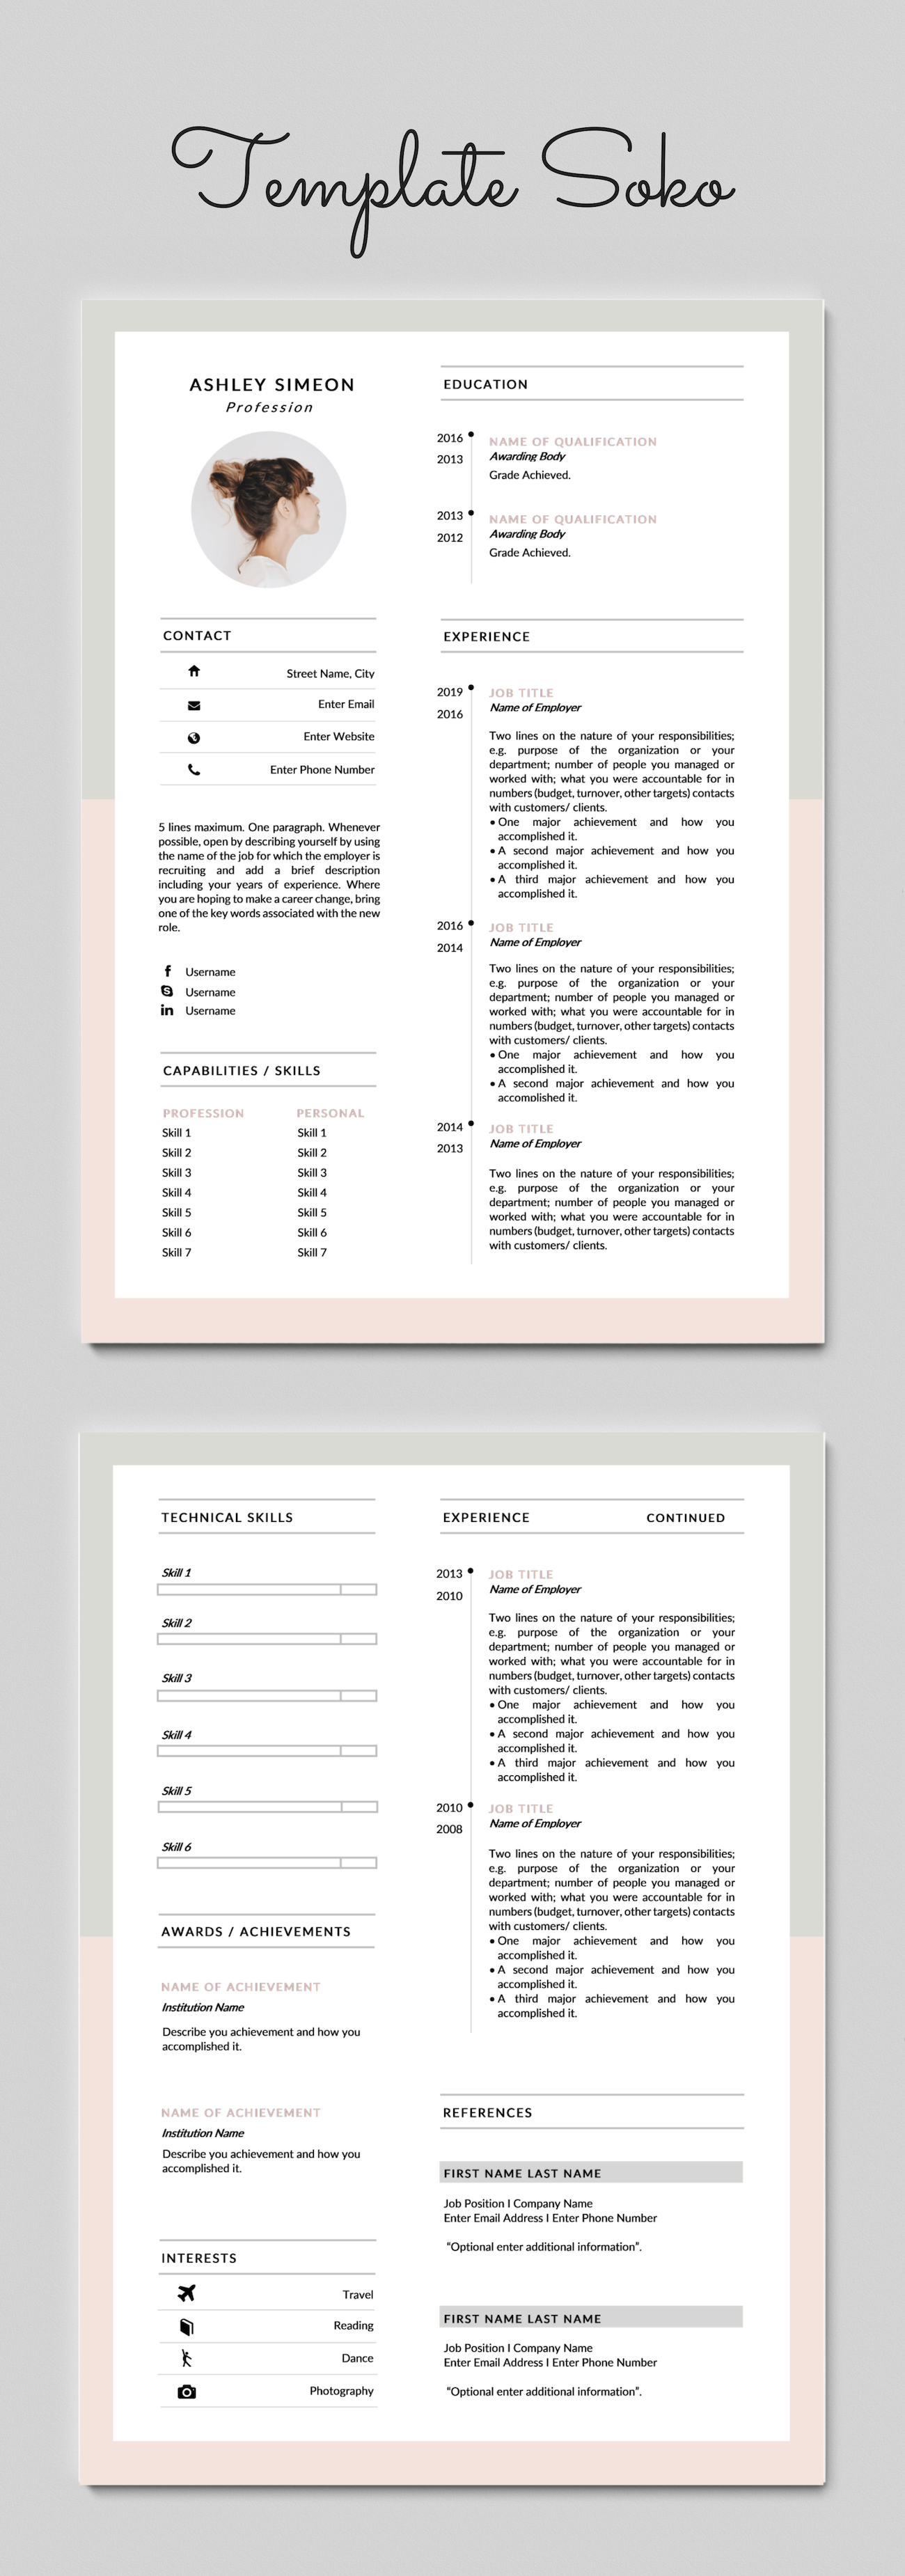 Pin On Build A Resume Template